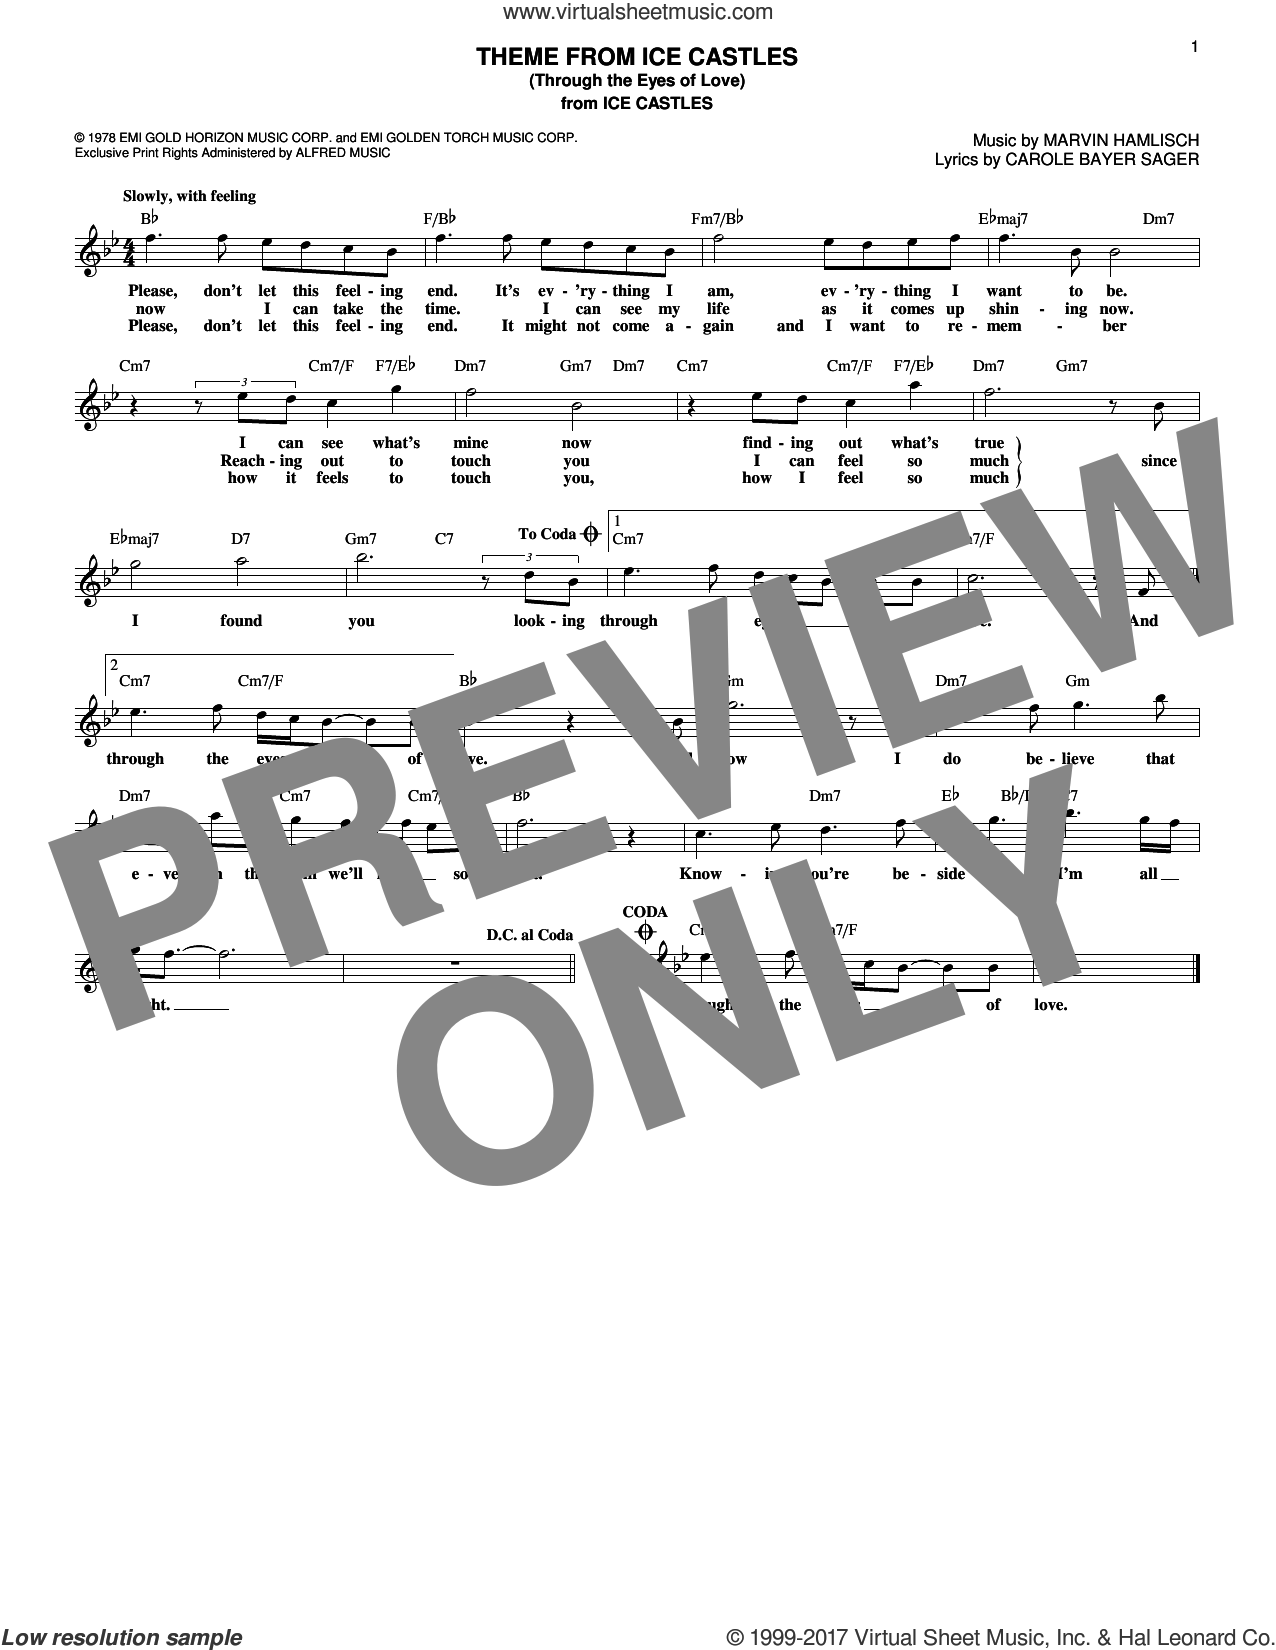 Theme From Ice Castles (Through The Eyes Of Love) sheet music for voice and other instruments (fake book) by Carole Bayer Sager and Marvin Hamlisch, intermediate skill level